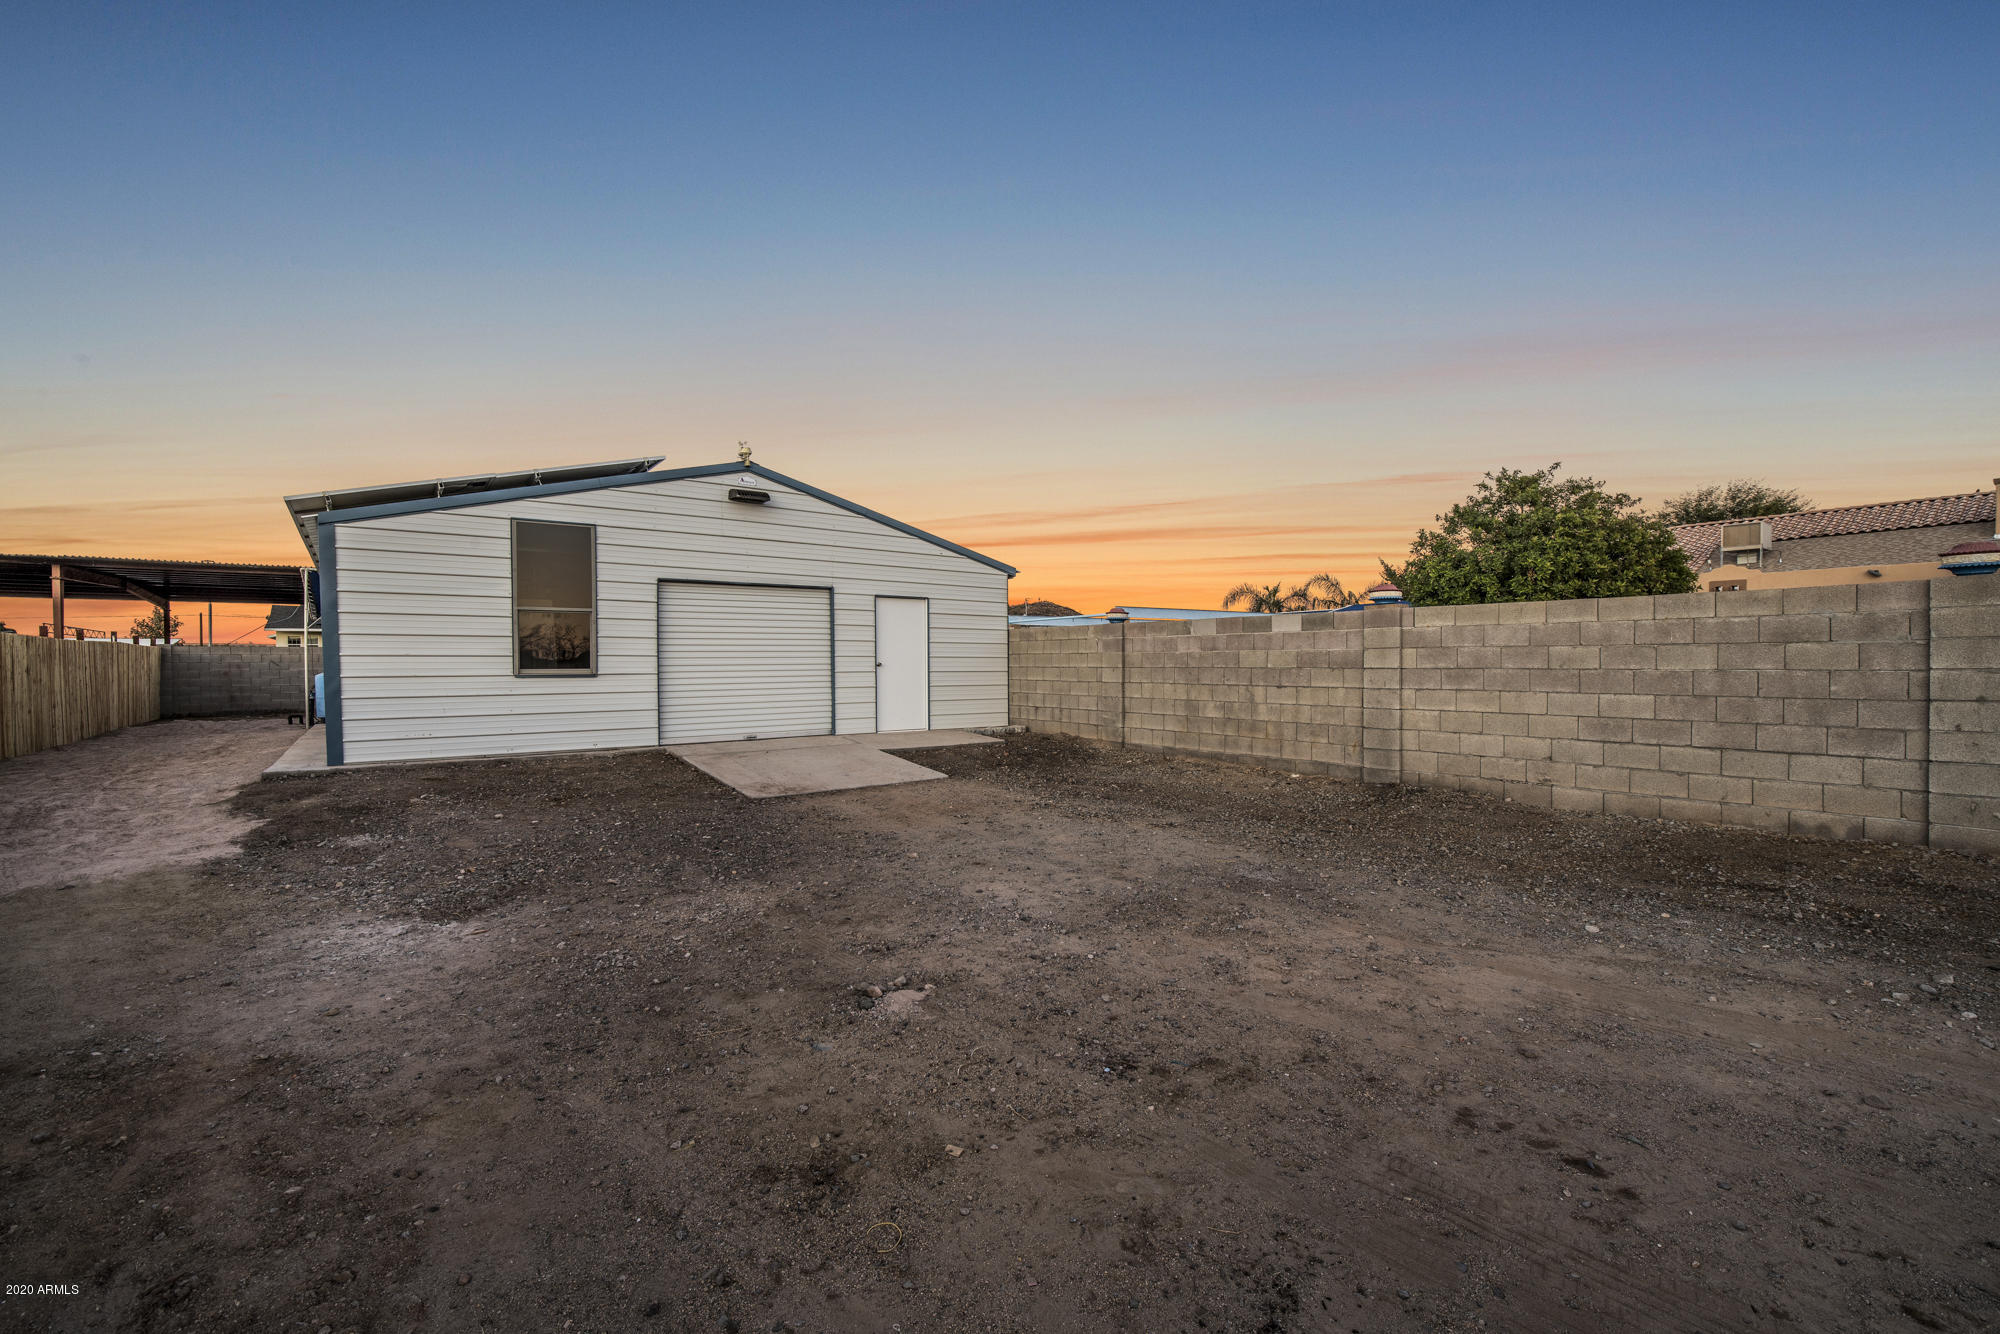 37TH Avenue, Phoenix, Arizona 85083, 4 Bedrooms Bedrooms, ,3.5 BathroomsBathrooms,Residential,For Sale,37TH,6168200